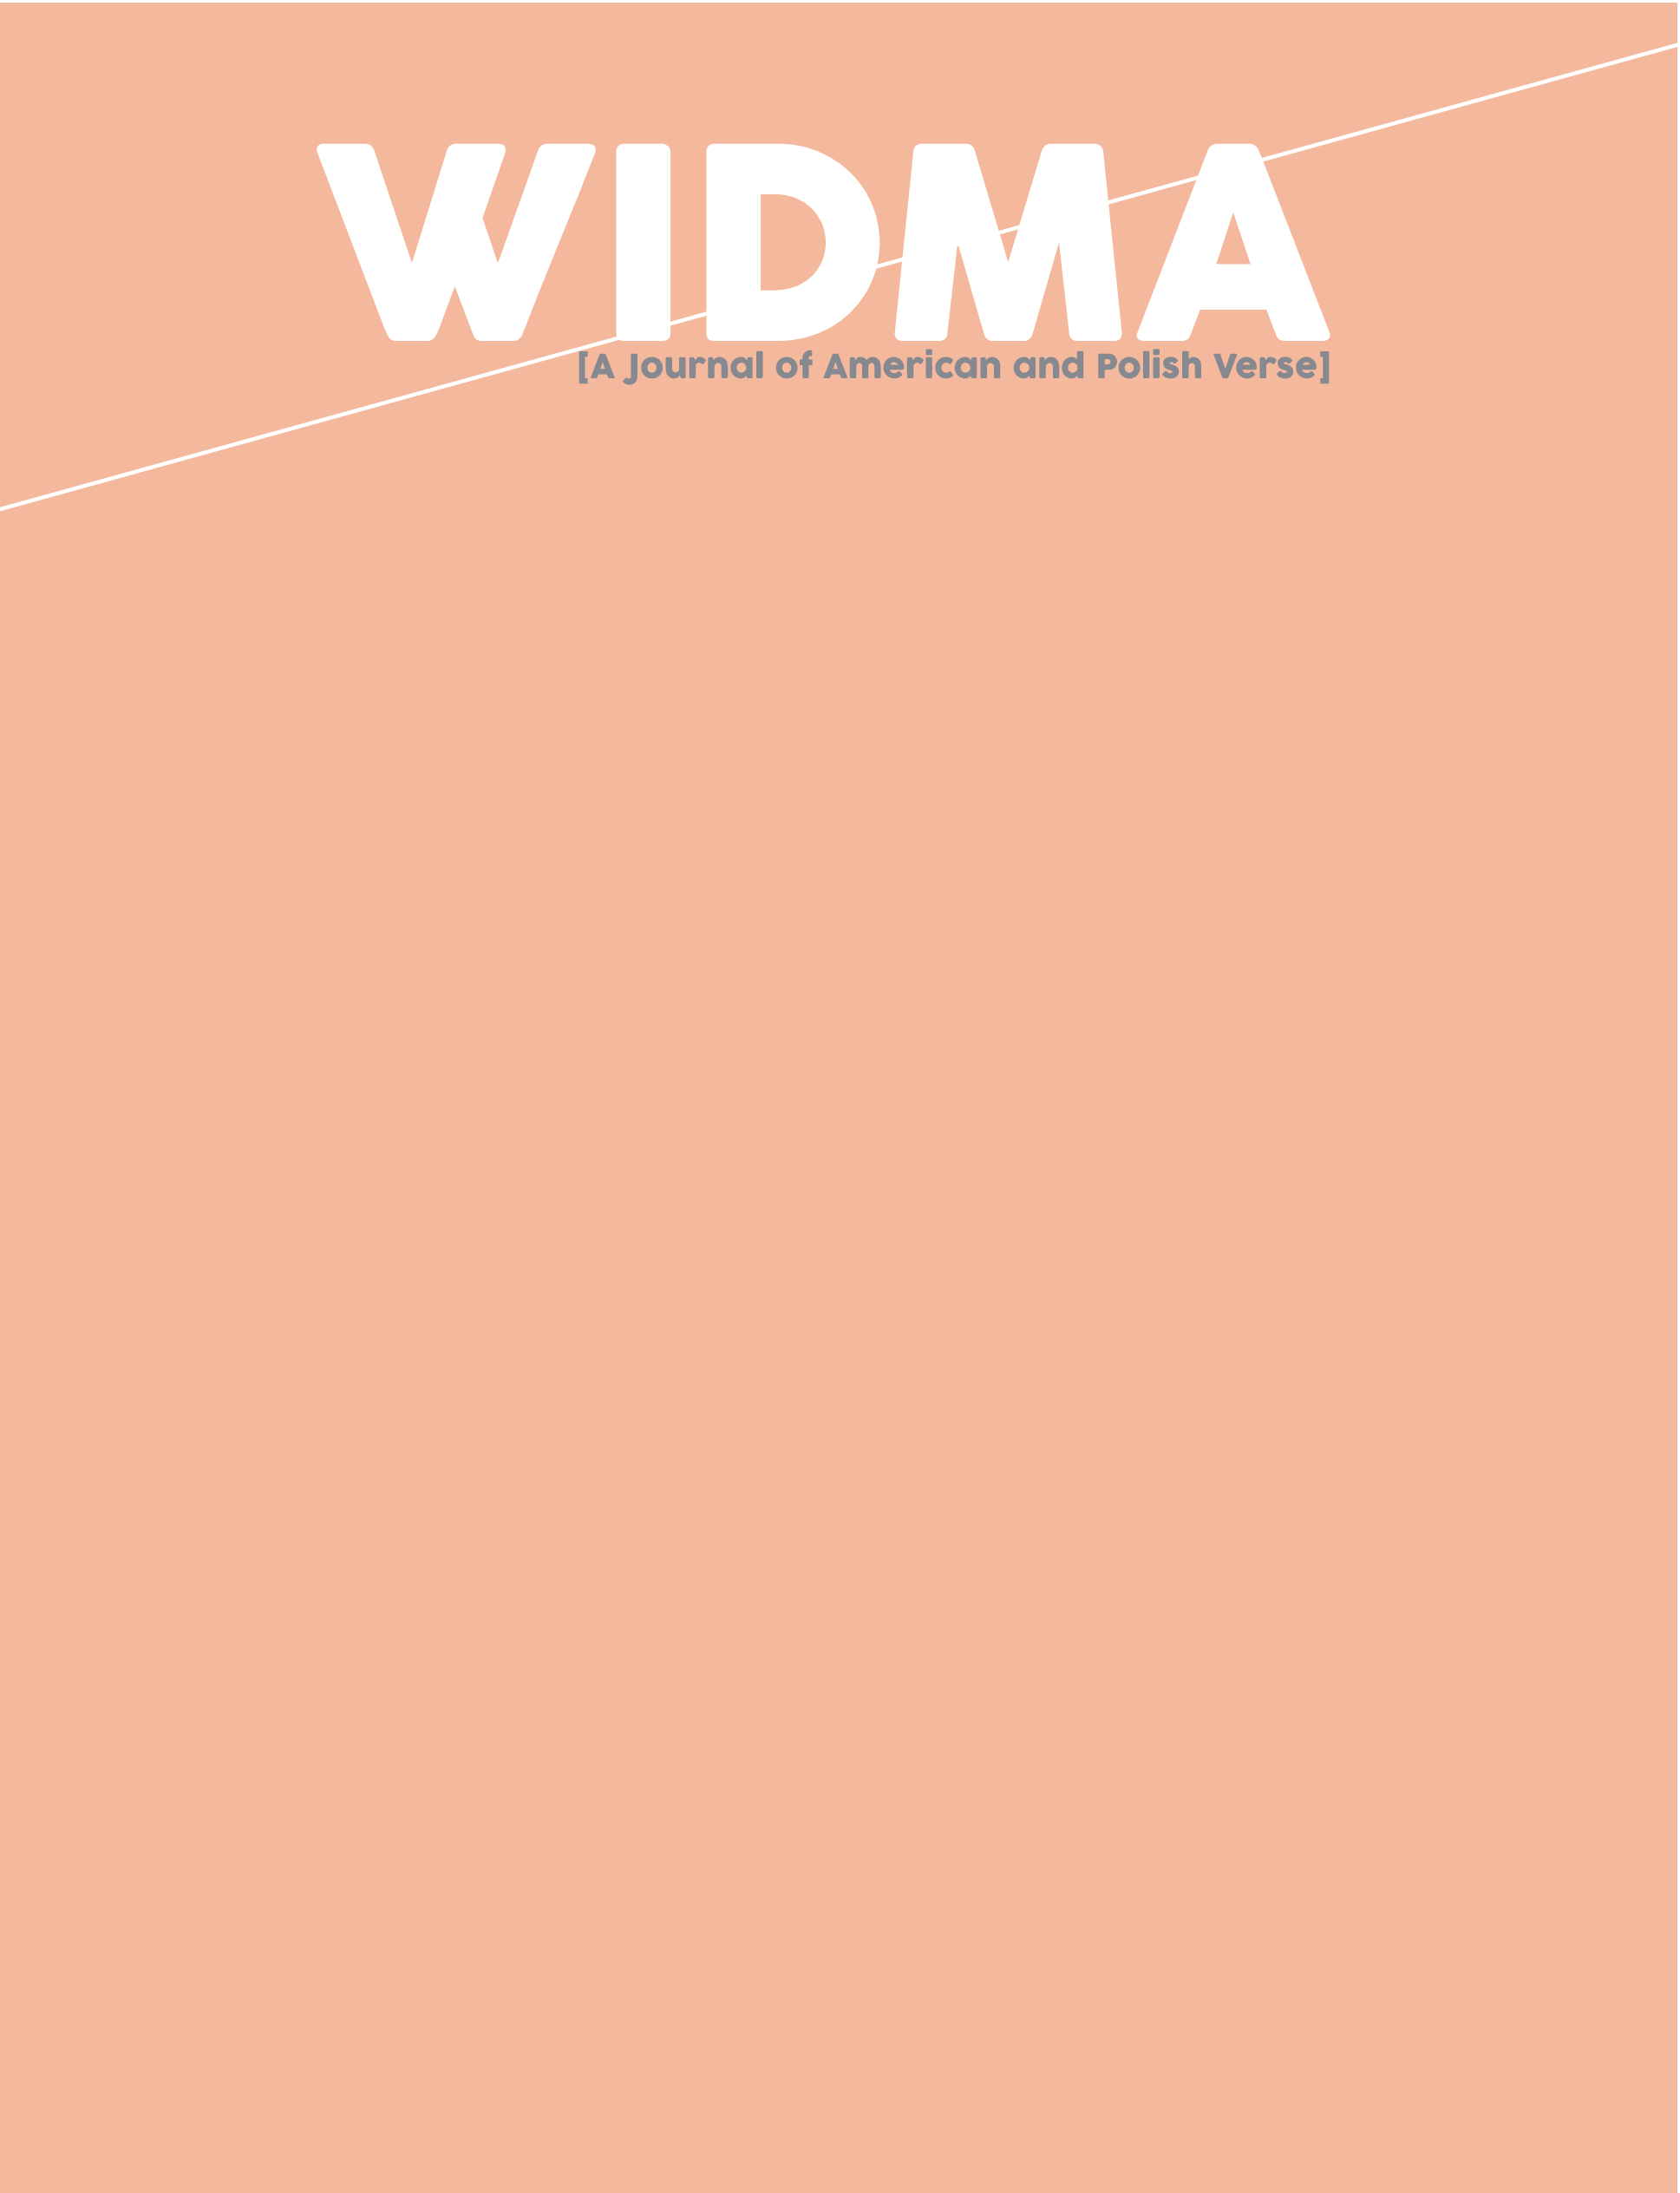 Widma vol.2, no.1. Page 1.